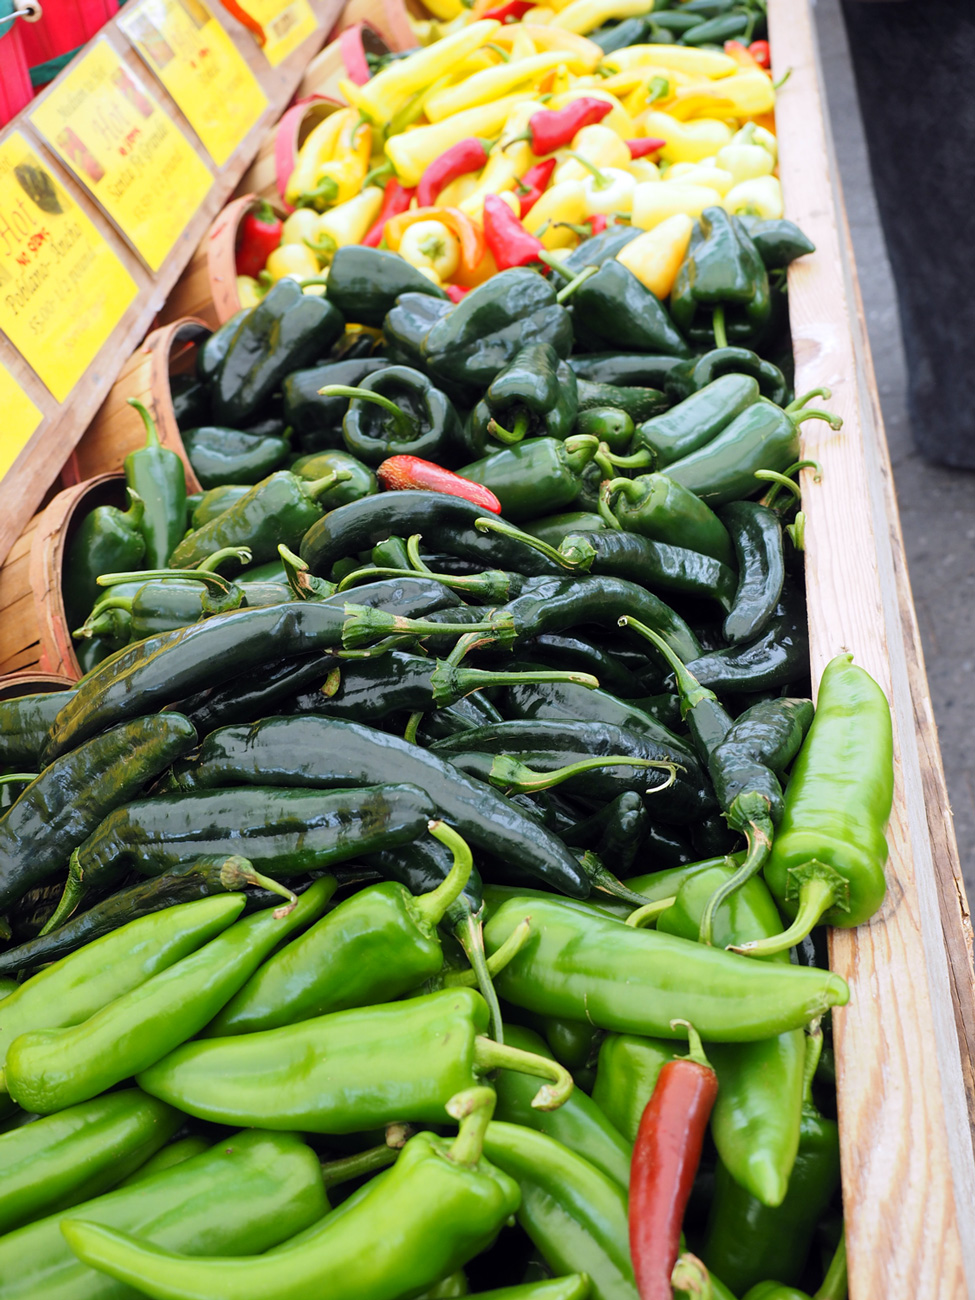 A length of peppers from which to choose at the  Union Square Market in NYC